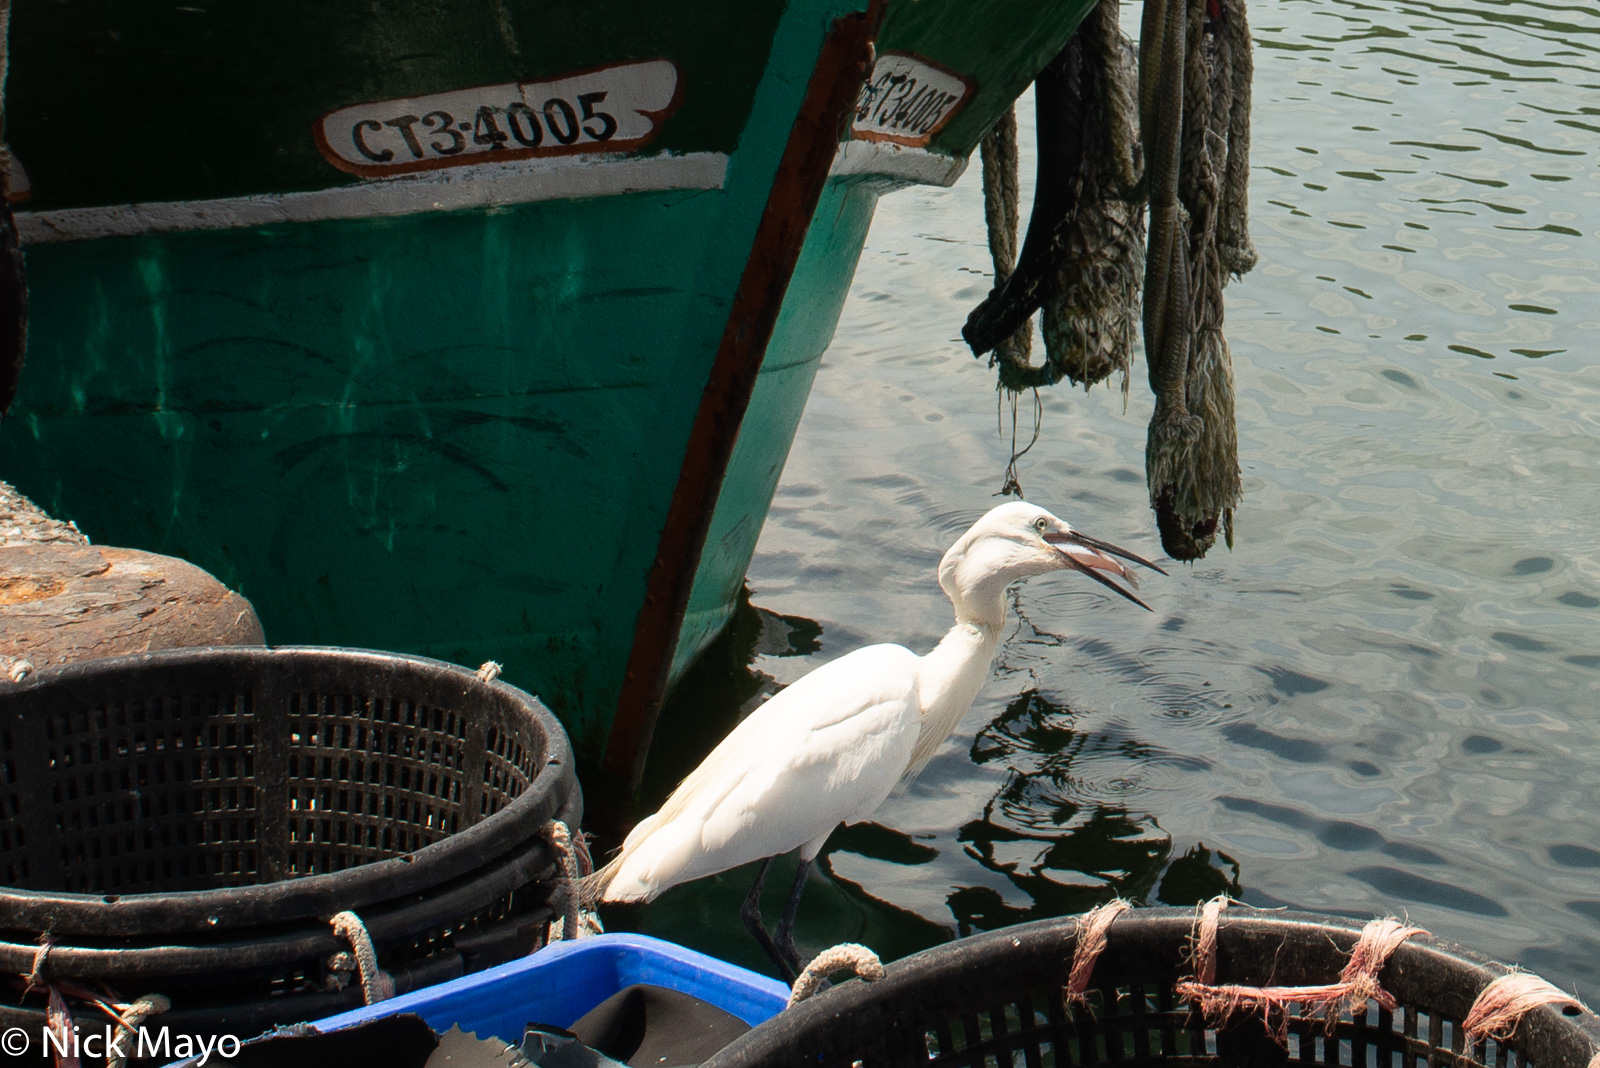 An egret swallowing a stolen fish at Nanfangao port in Suao.